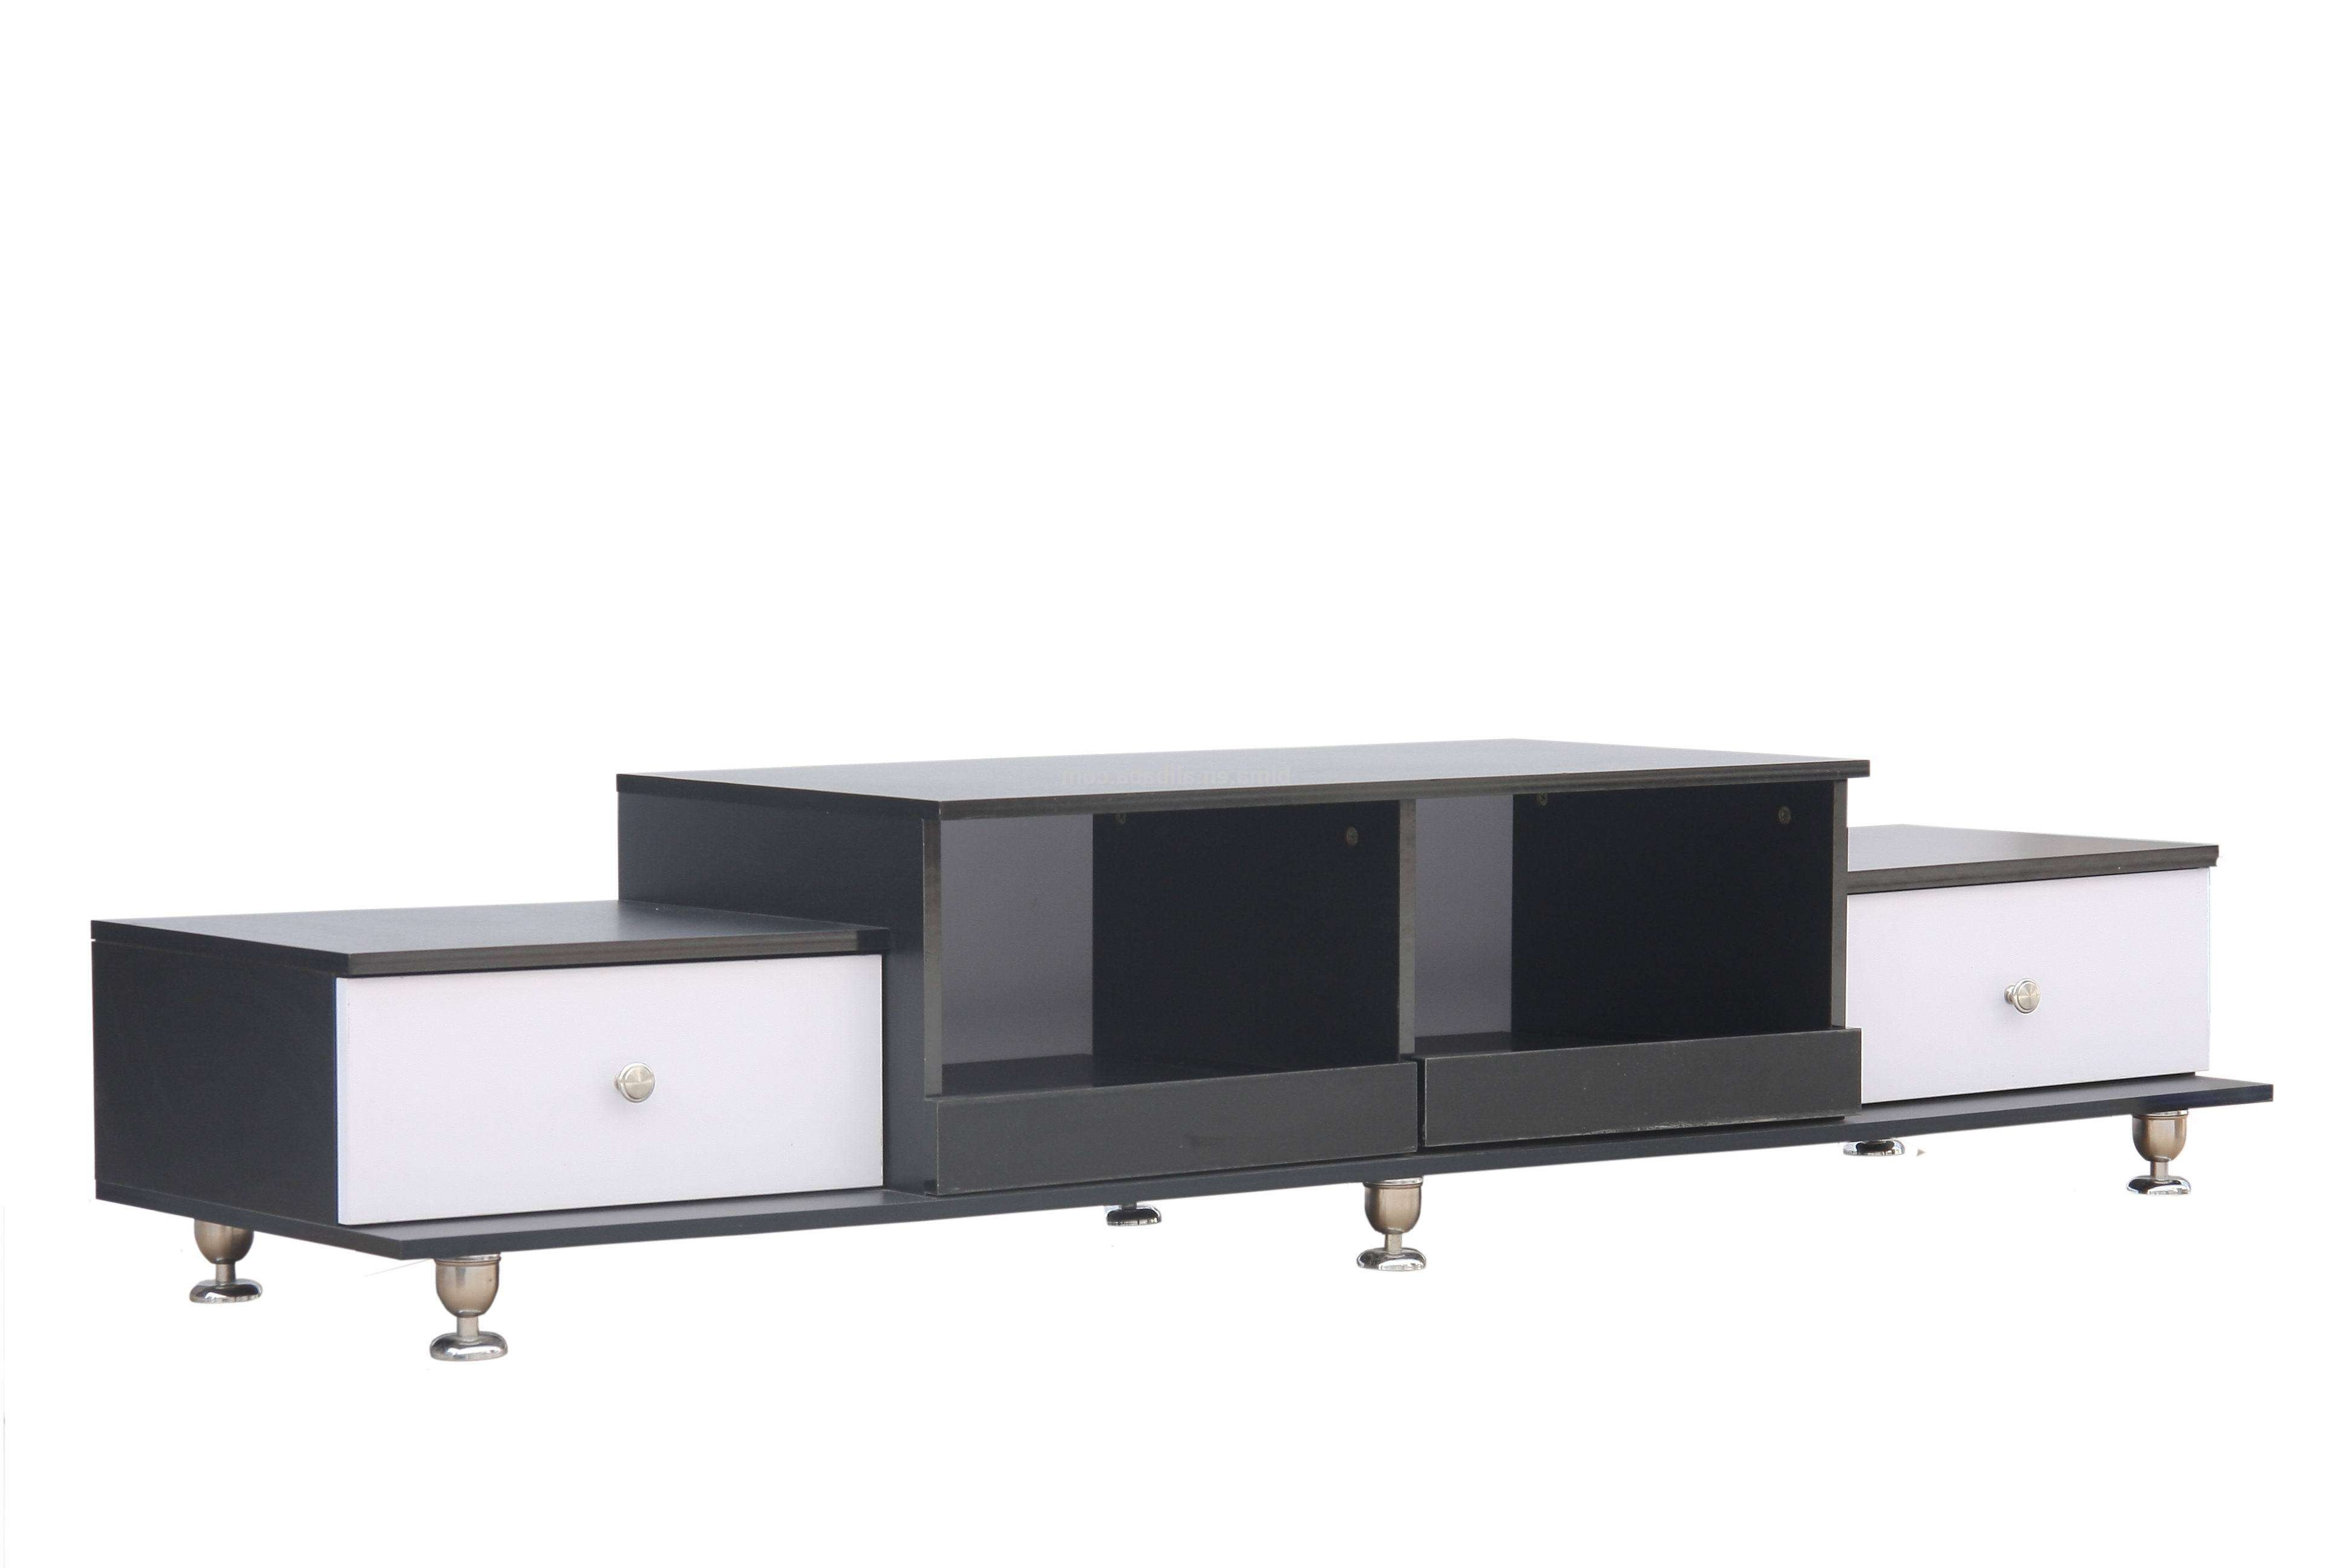 L Shaped Tv Cabinet – Buy L Shaped Tv Cabinet,tv Cabinet,tv Bench With Regard To L Shaped Tv Stands (View 5 of 15)